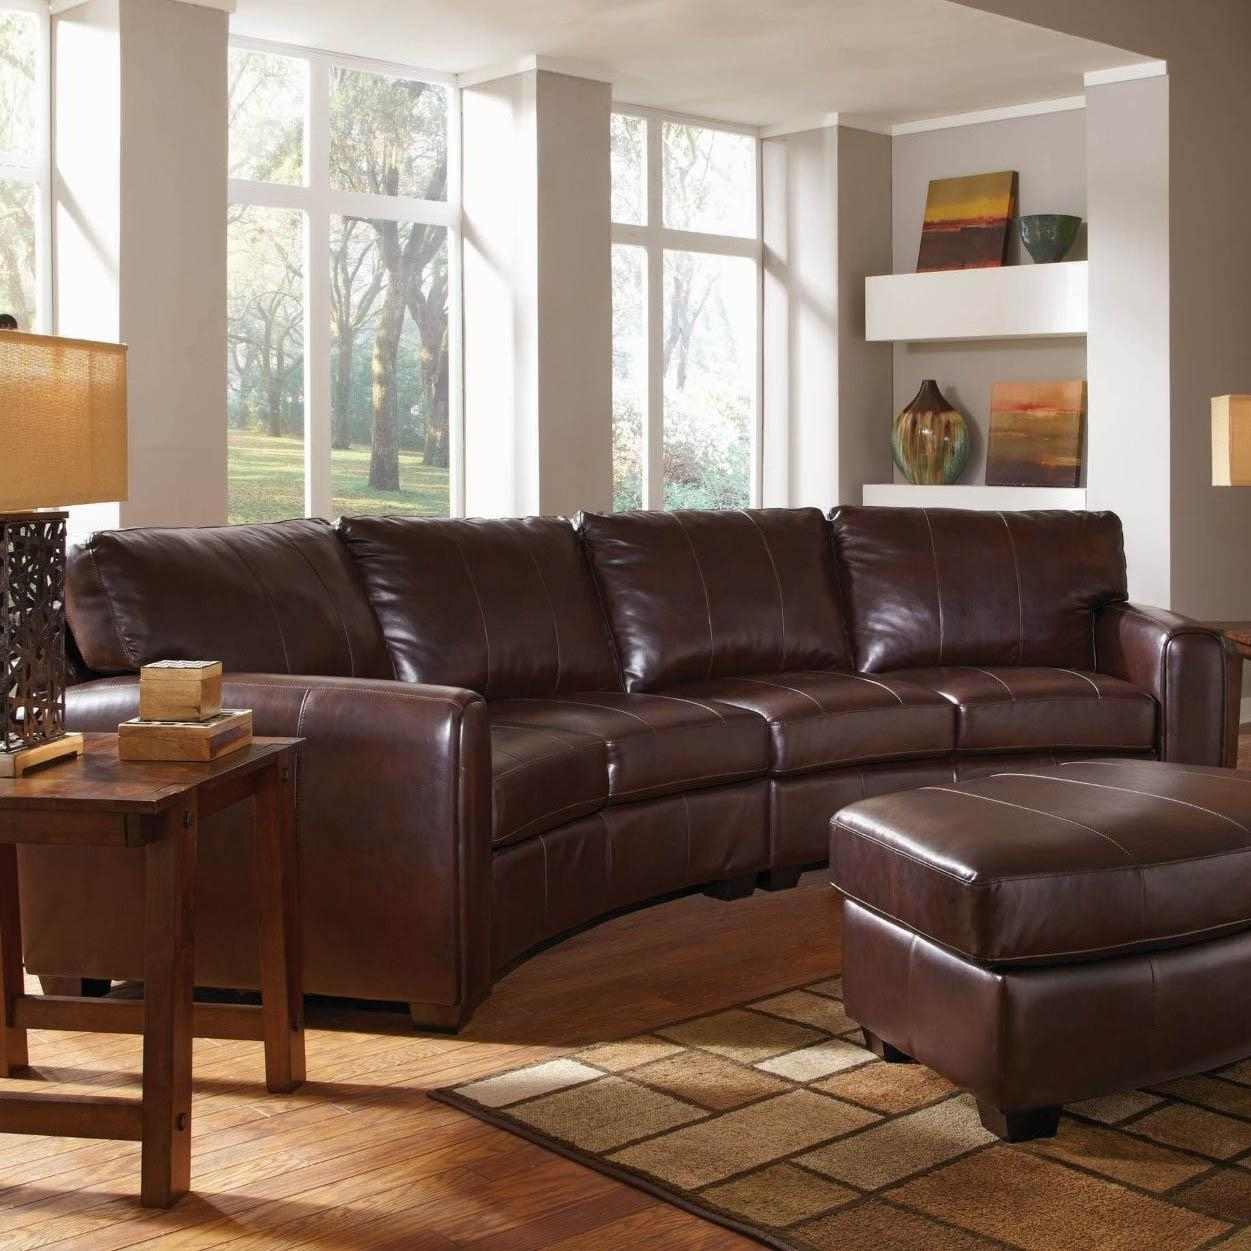 2018 latest leather curved sectional sofa ideas. Black Bedroom Furniture Sets. Home Design Ideas